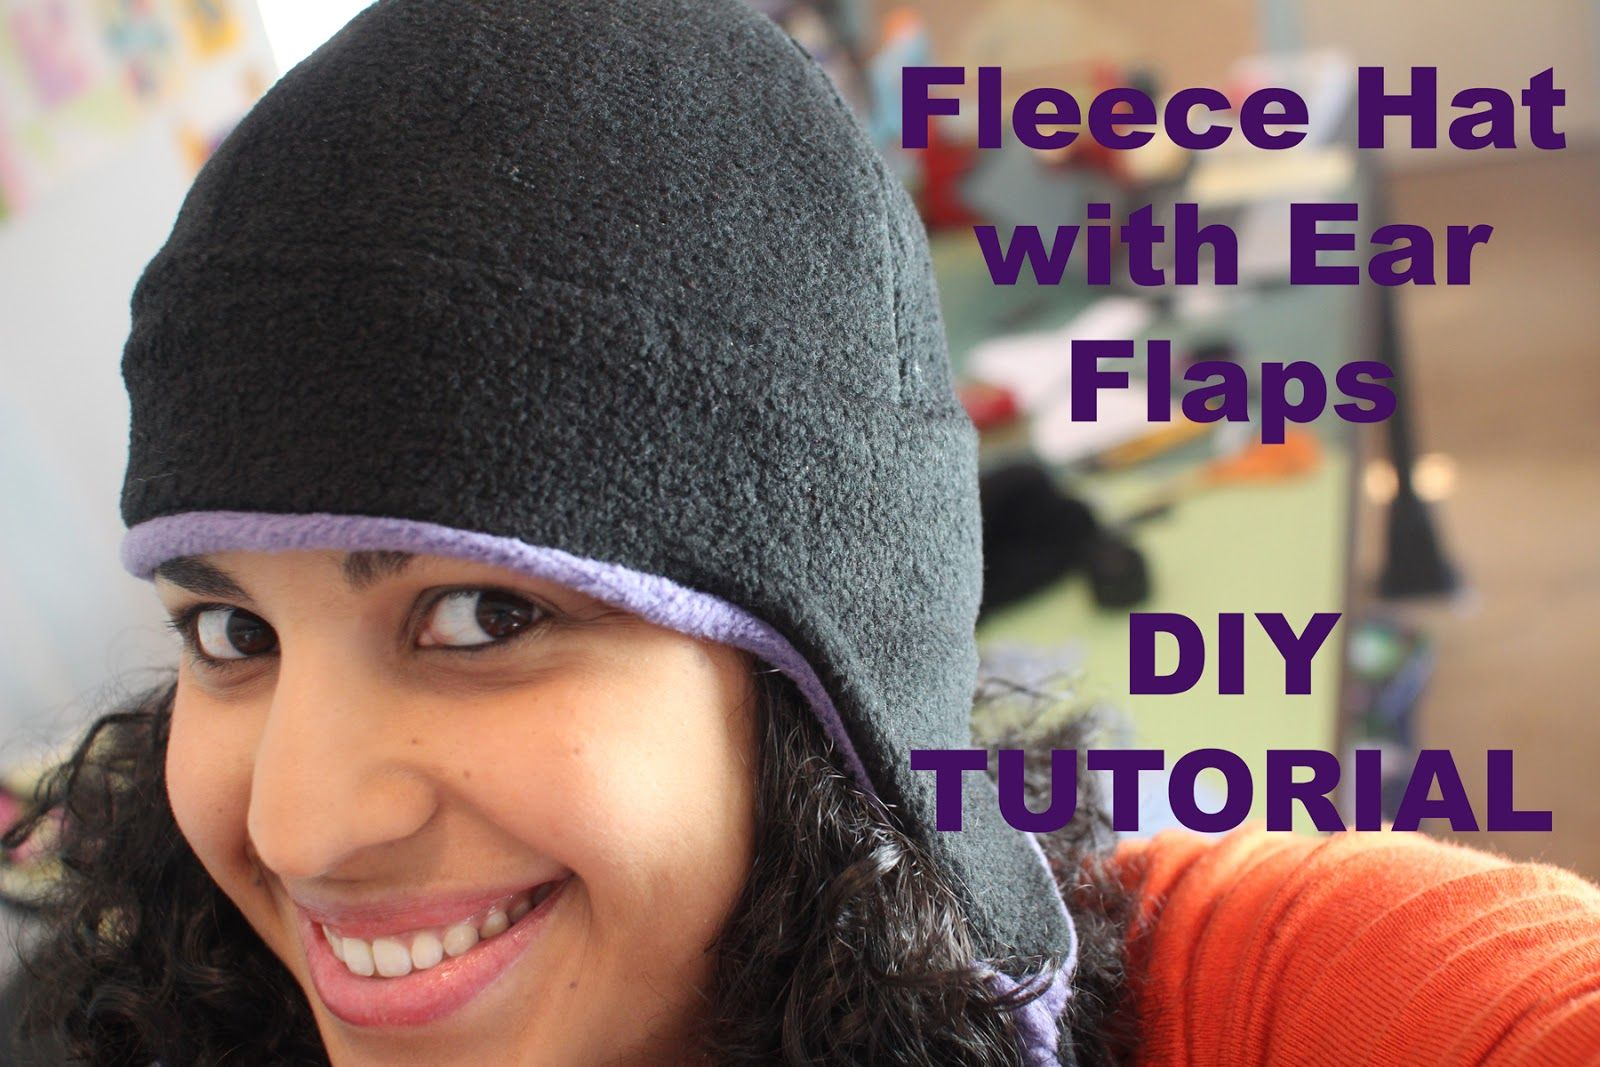 DIY TUTORIAL- How to make a REVERSIBLE fleece hat with ear flaps. By ...